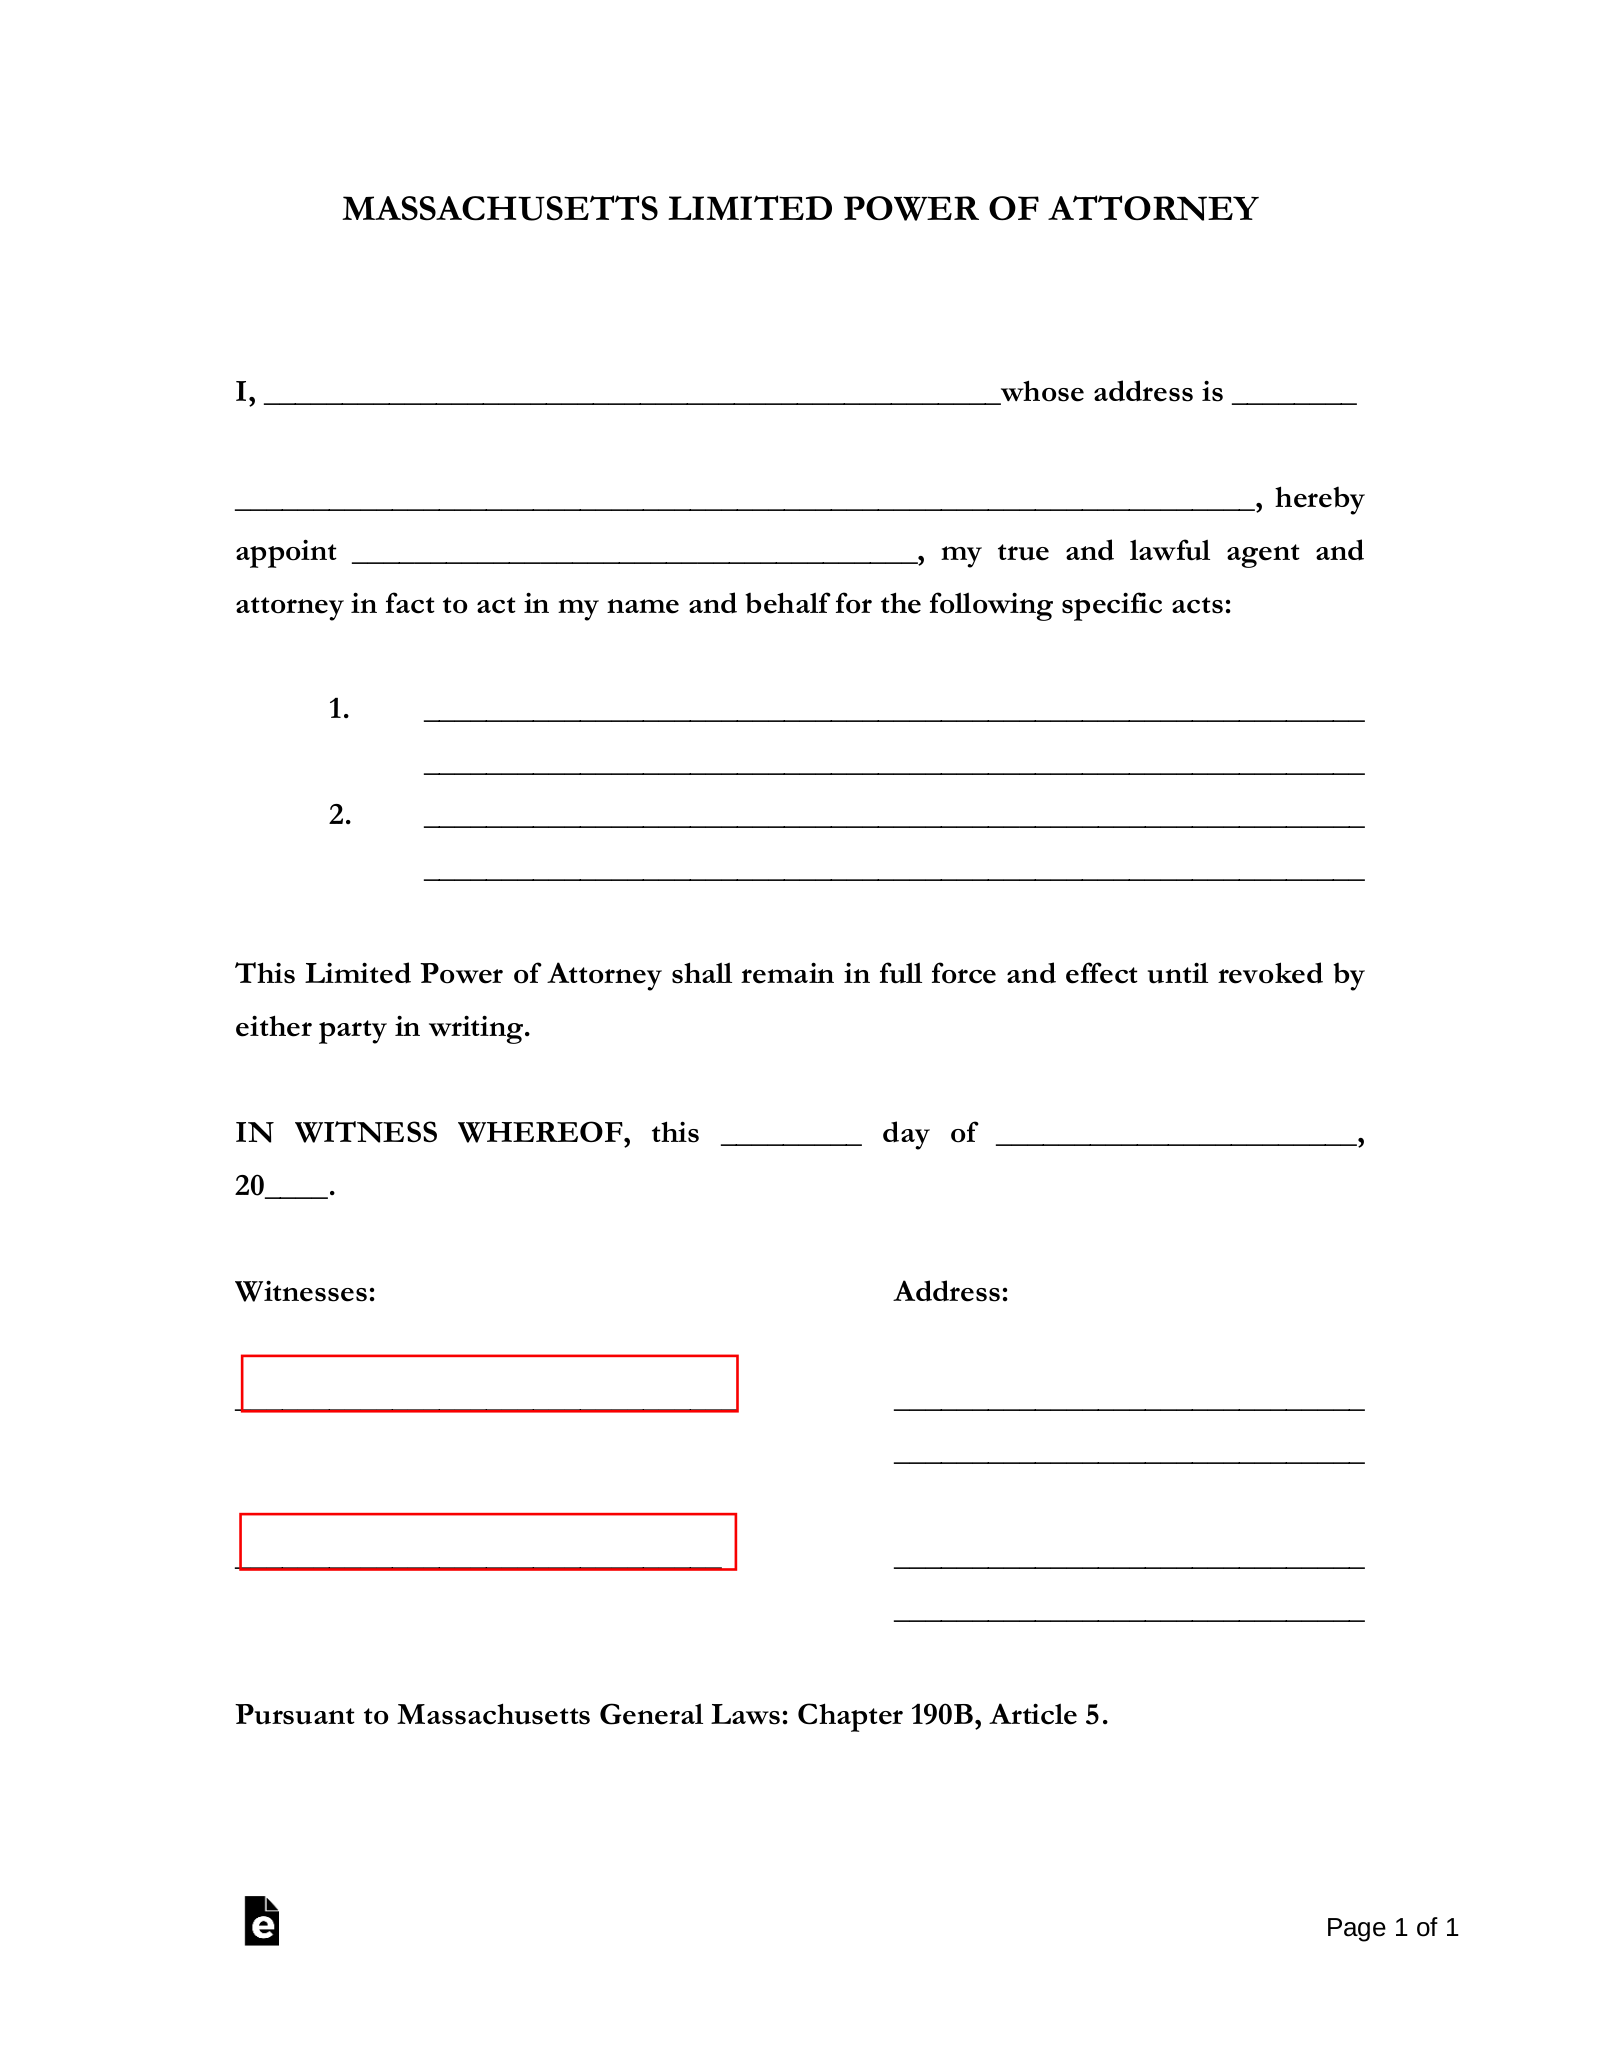 power of attorney form massachusetts  Free Massachusetts Limited Power of Attorney Form - PDF ...